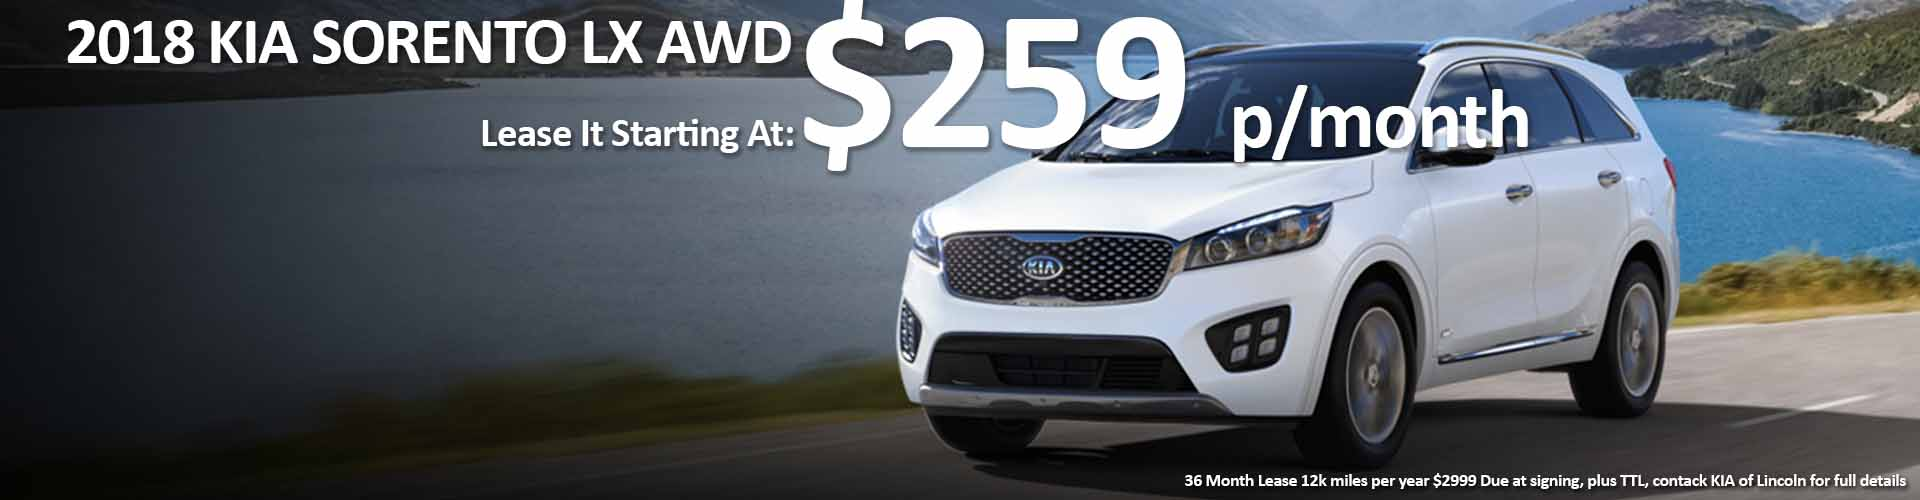 2018 KIA SORENTO LEASE deals Nebraska and Iowa